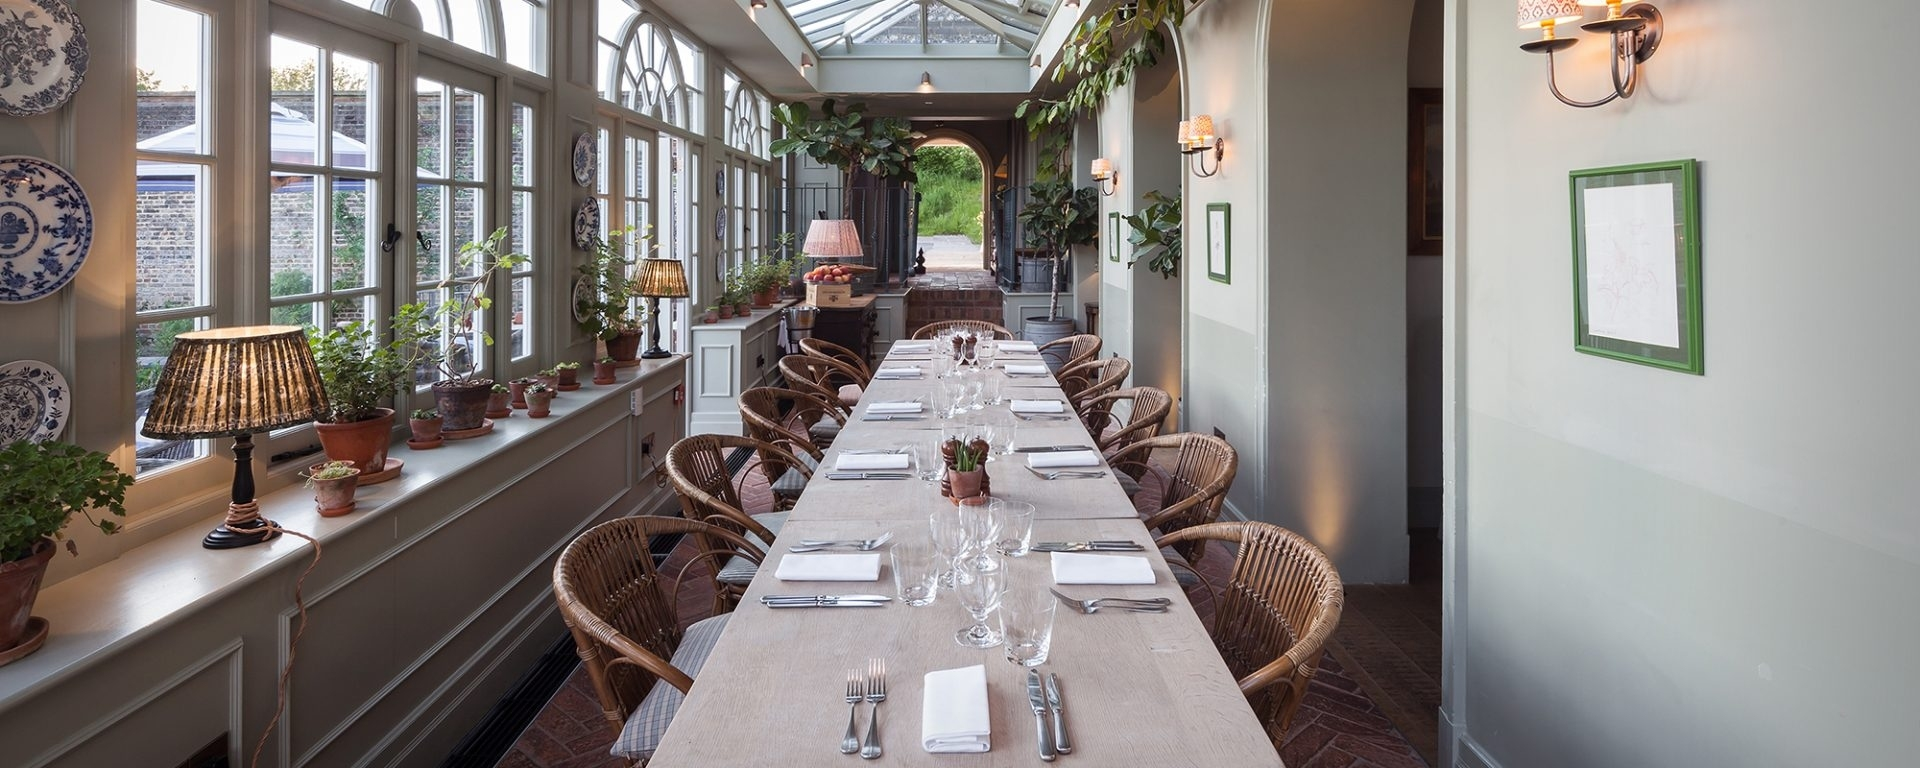 Beaverbrook | English Country House, Hotel, Restaurant & Spa | Eat intended for The Garden House Restaurant Surrey